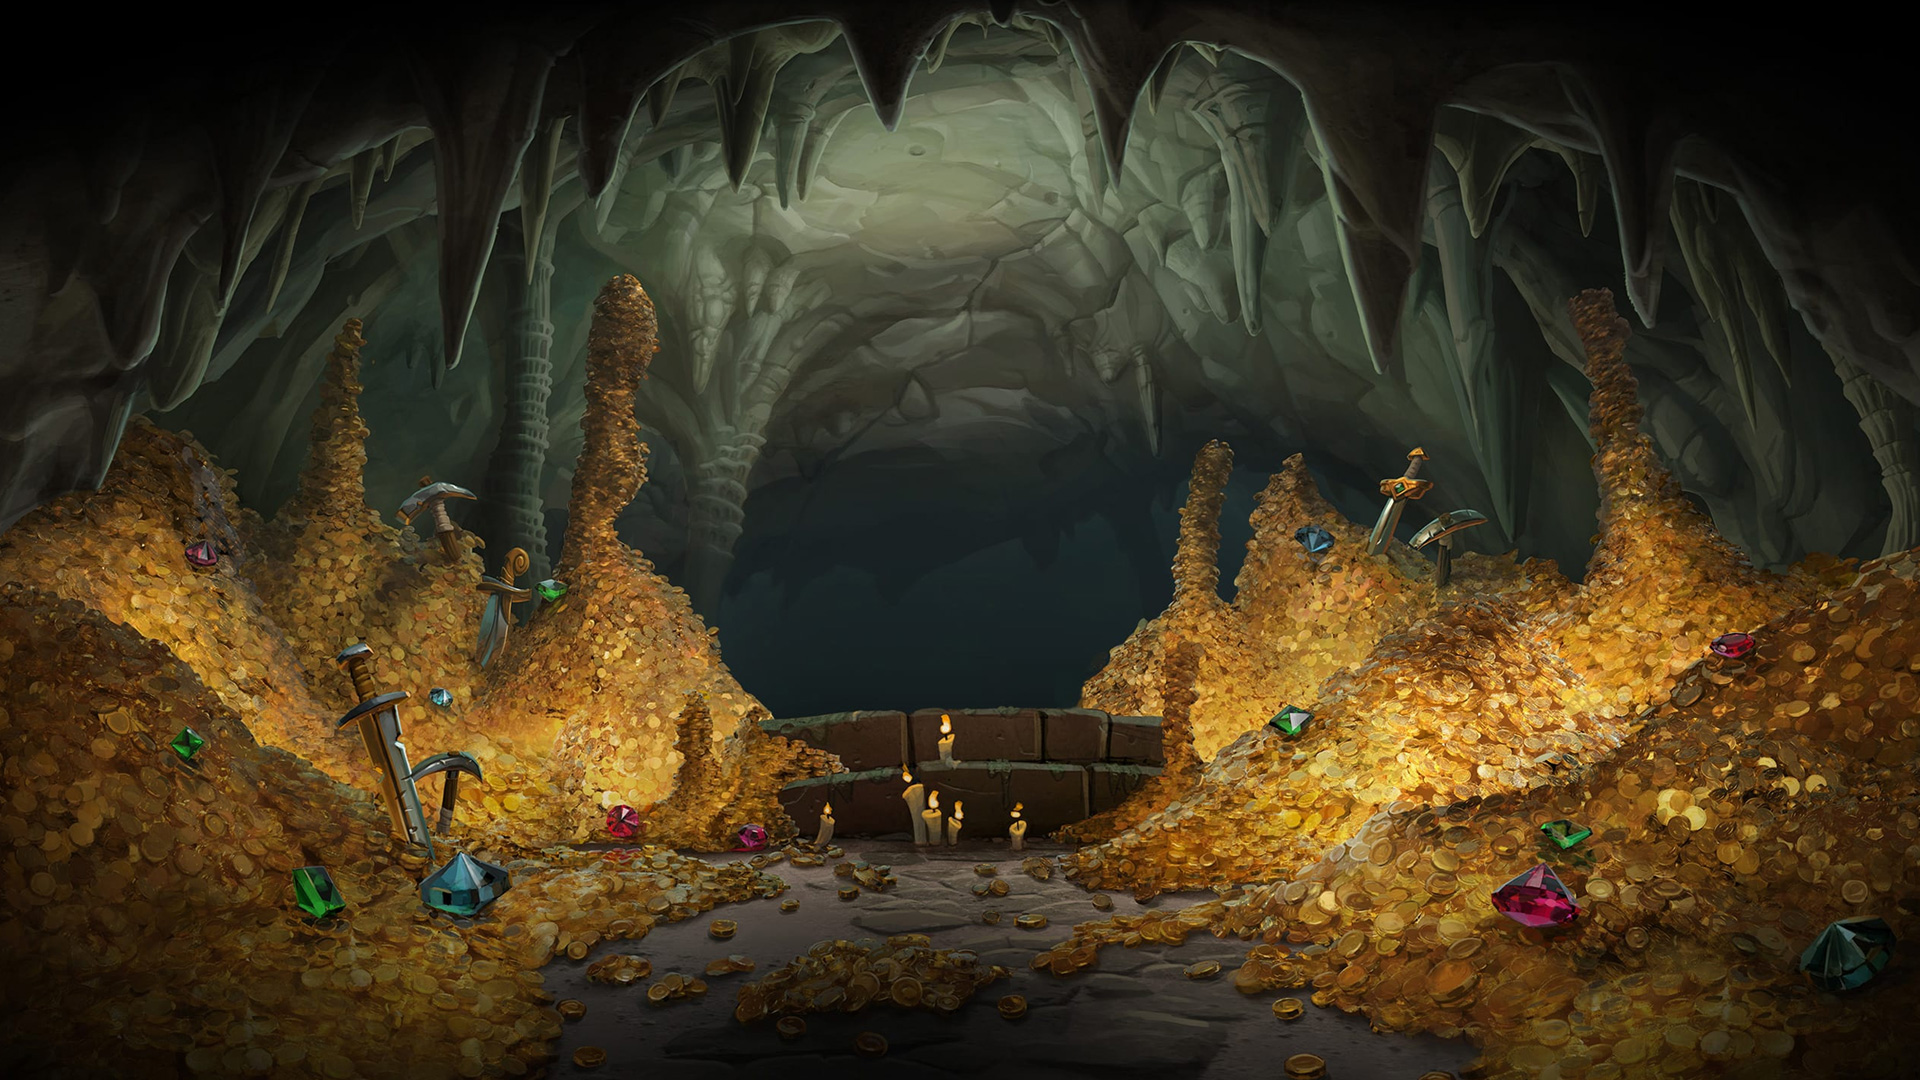 Kobolds and Catacombs Wallpapers High Quality wMobile Versions